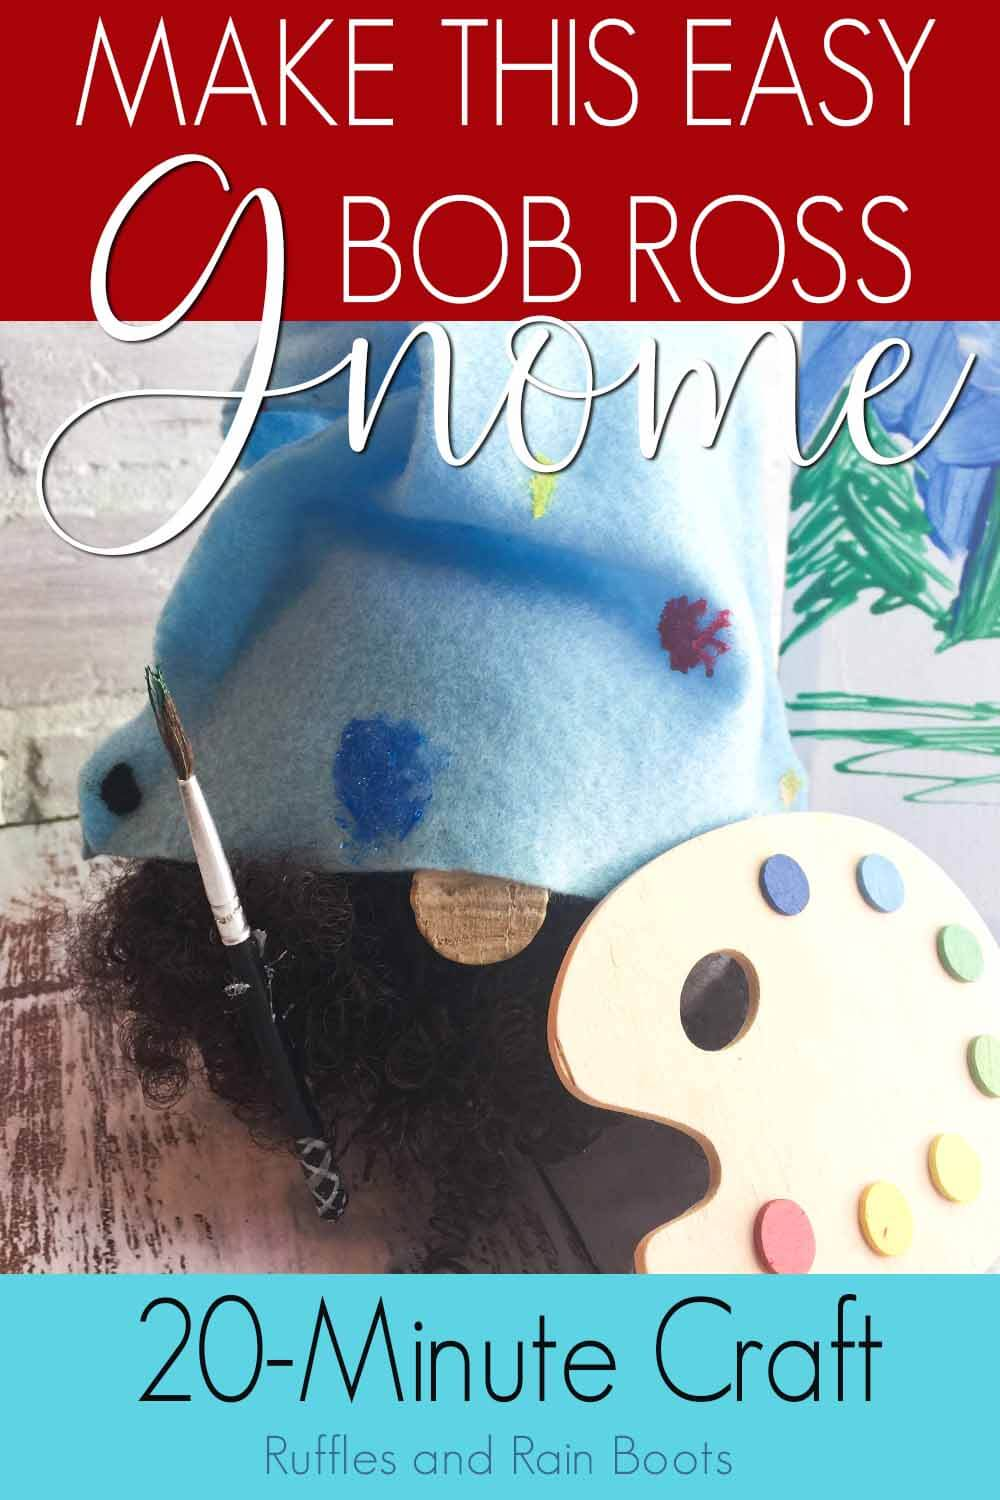 easy painter gnome with text which reads make this easy bob ross gnome 20-minute craft